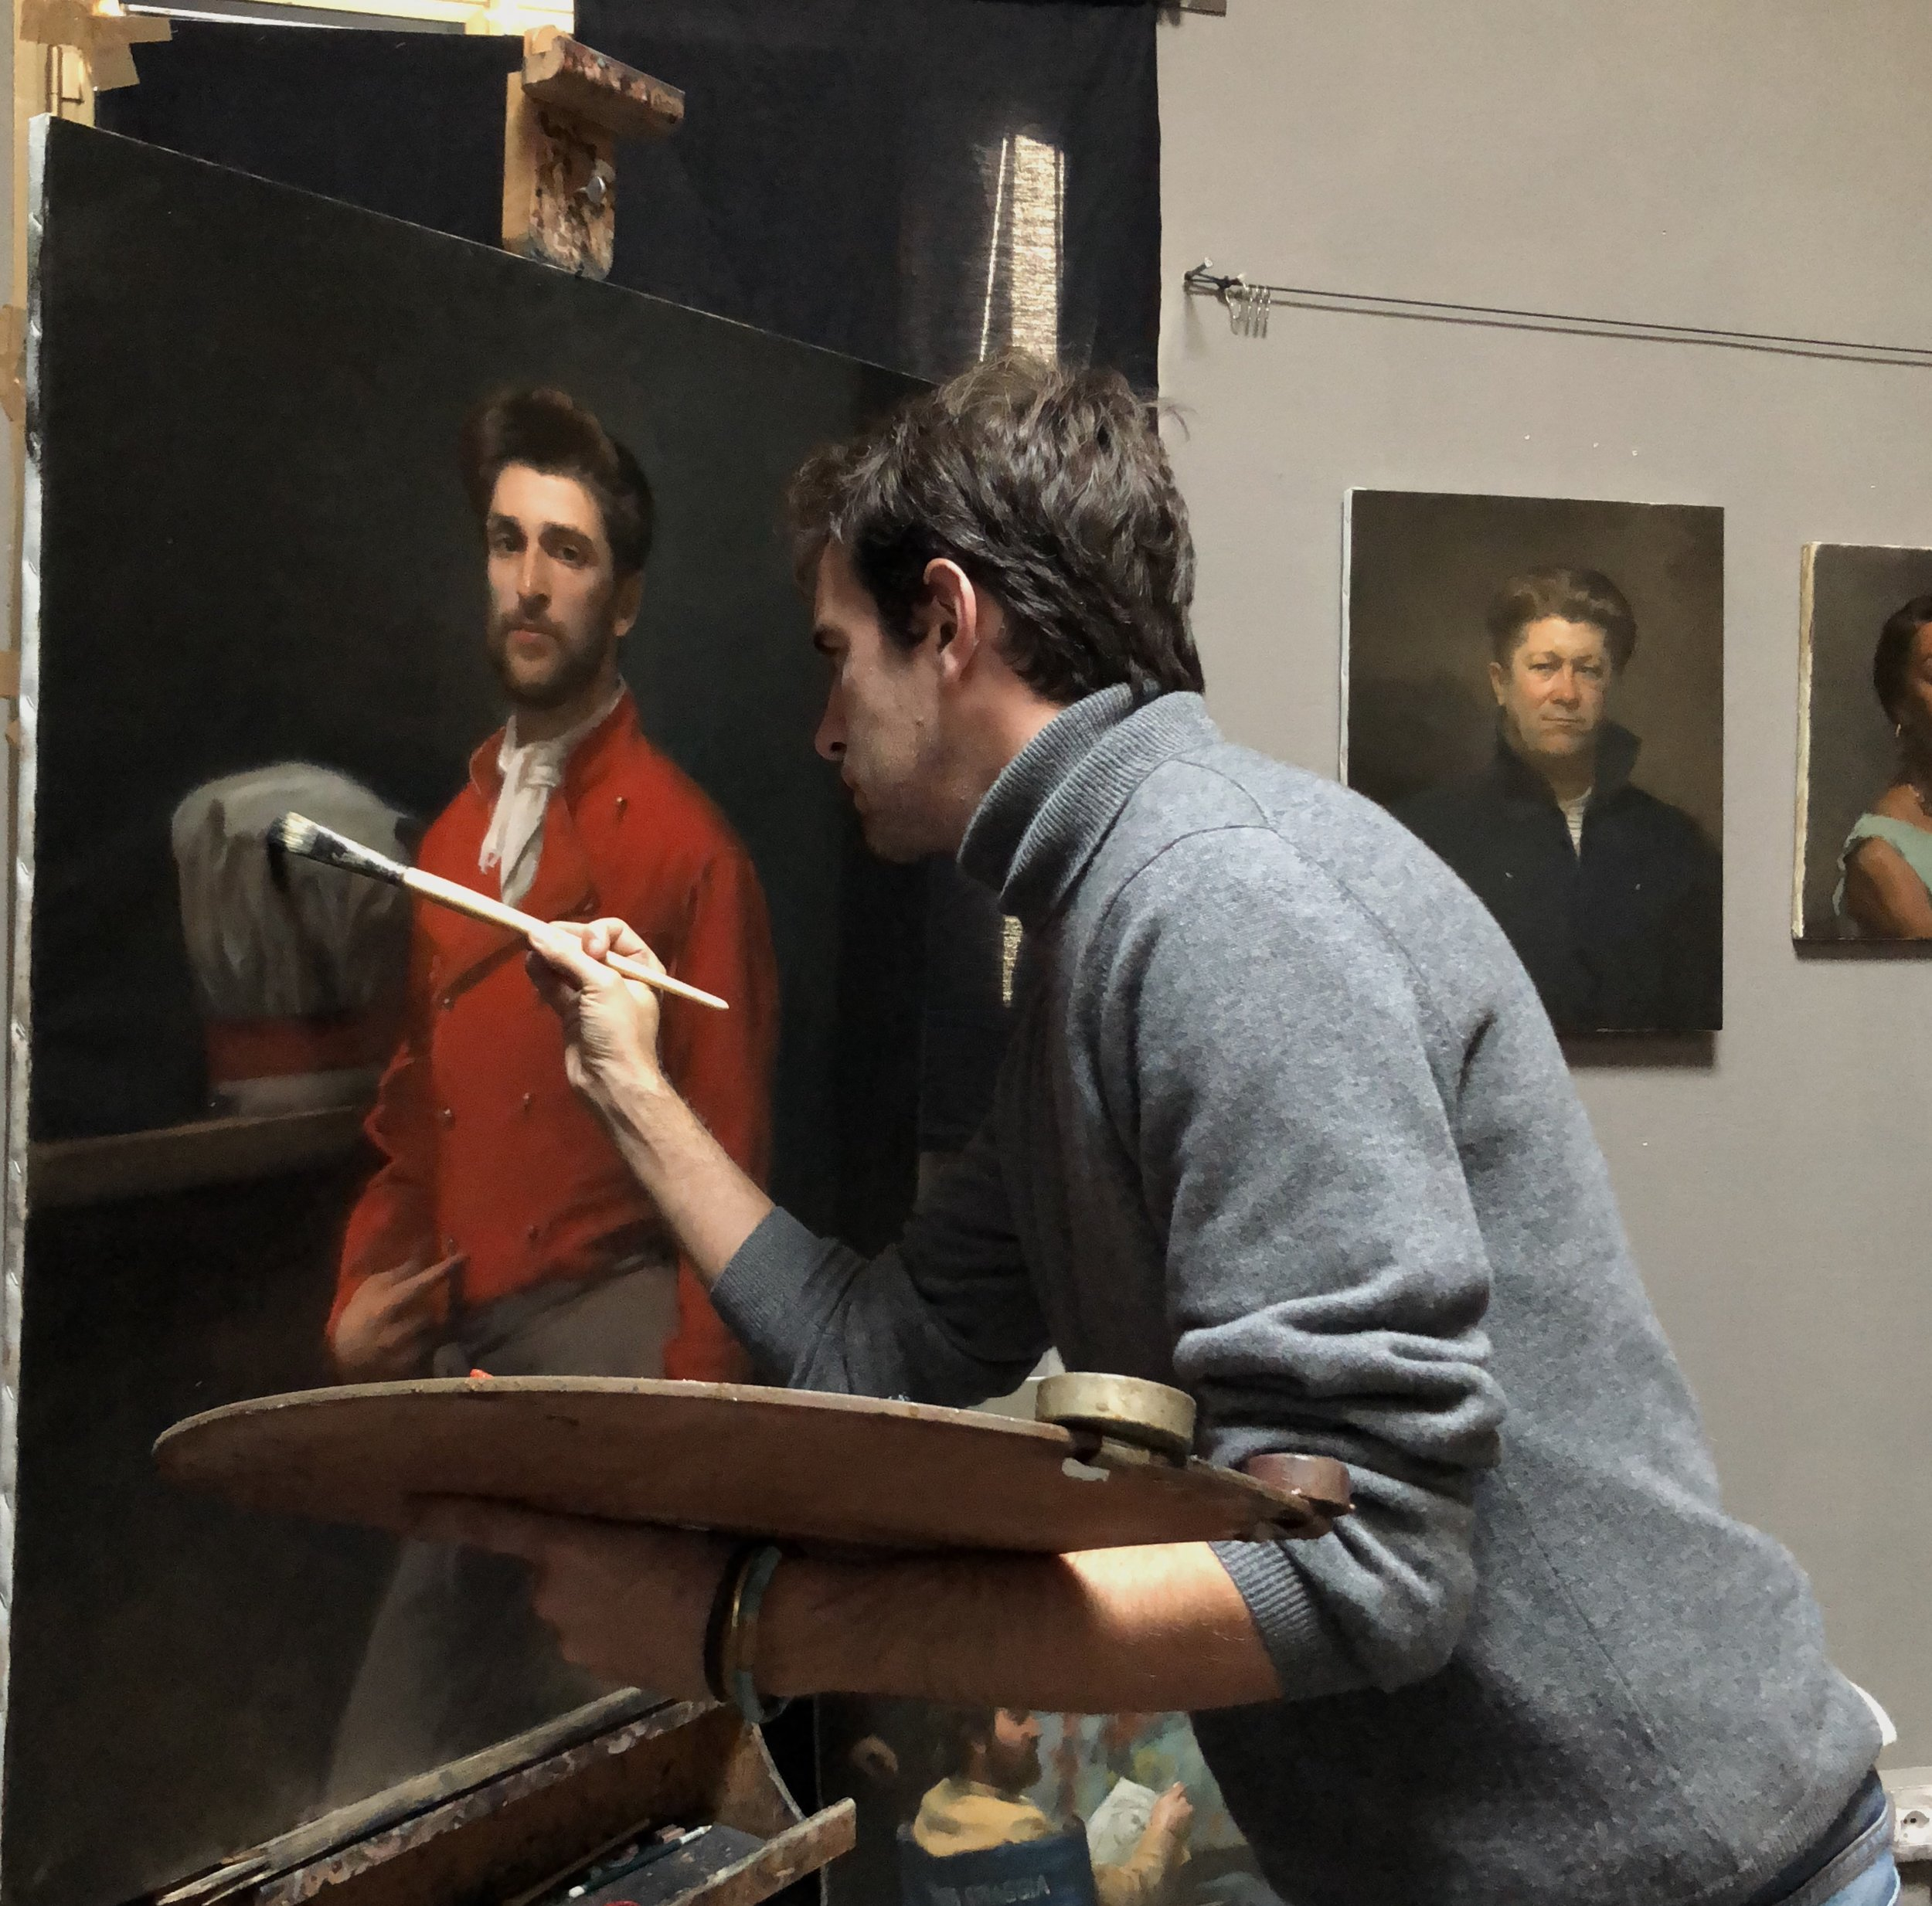 Tom Richards working on a portrait in his studio.